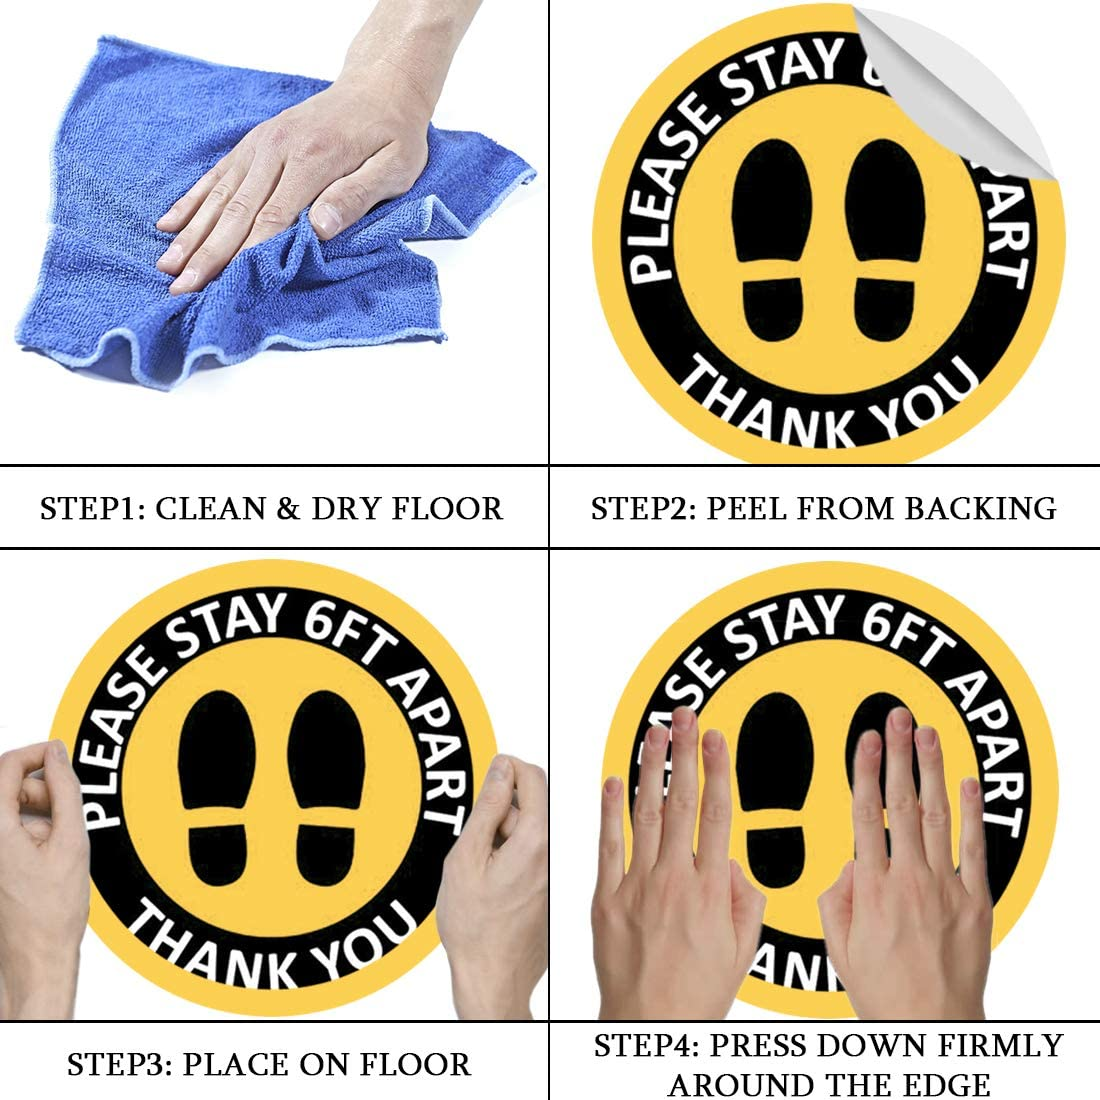 Social Distancing Floor Decals Waterproof Adhesive Anti-Slip Lamination Easy to Clean 10 Pack Safety Floor Signs Please Keep 6 Feet Apart Blue, 12 Inch 12 Round Vinyl Removable Stickers